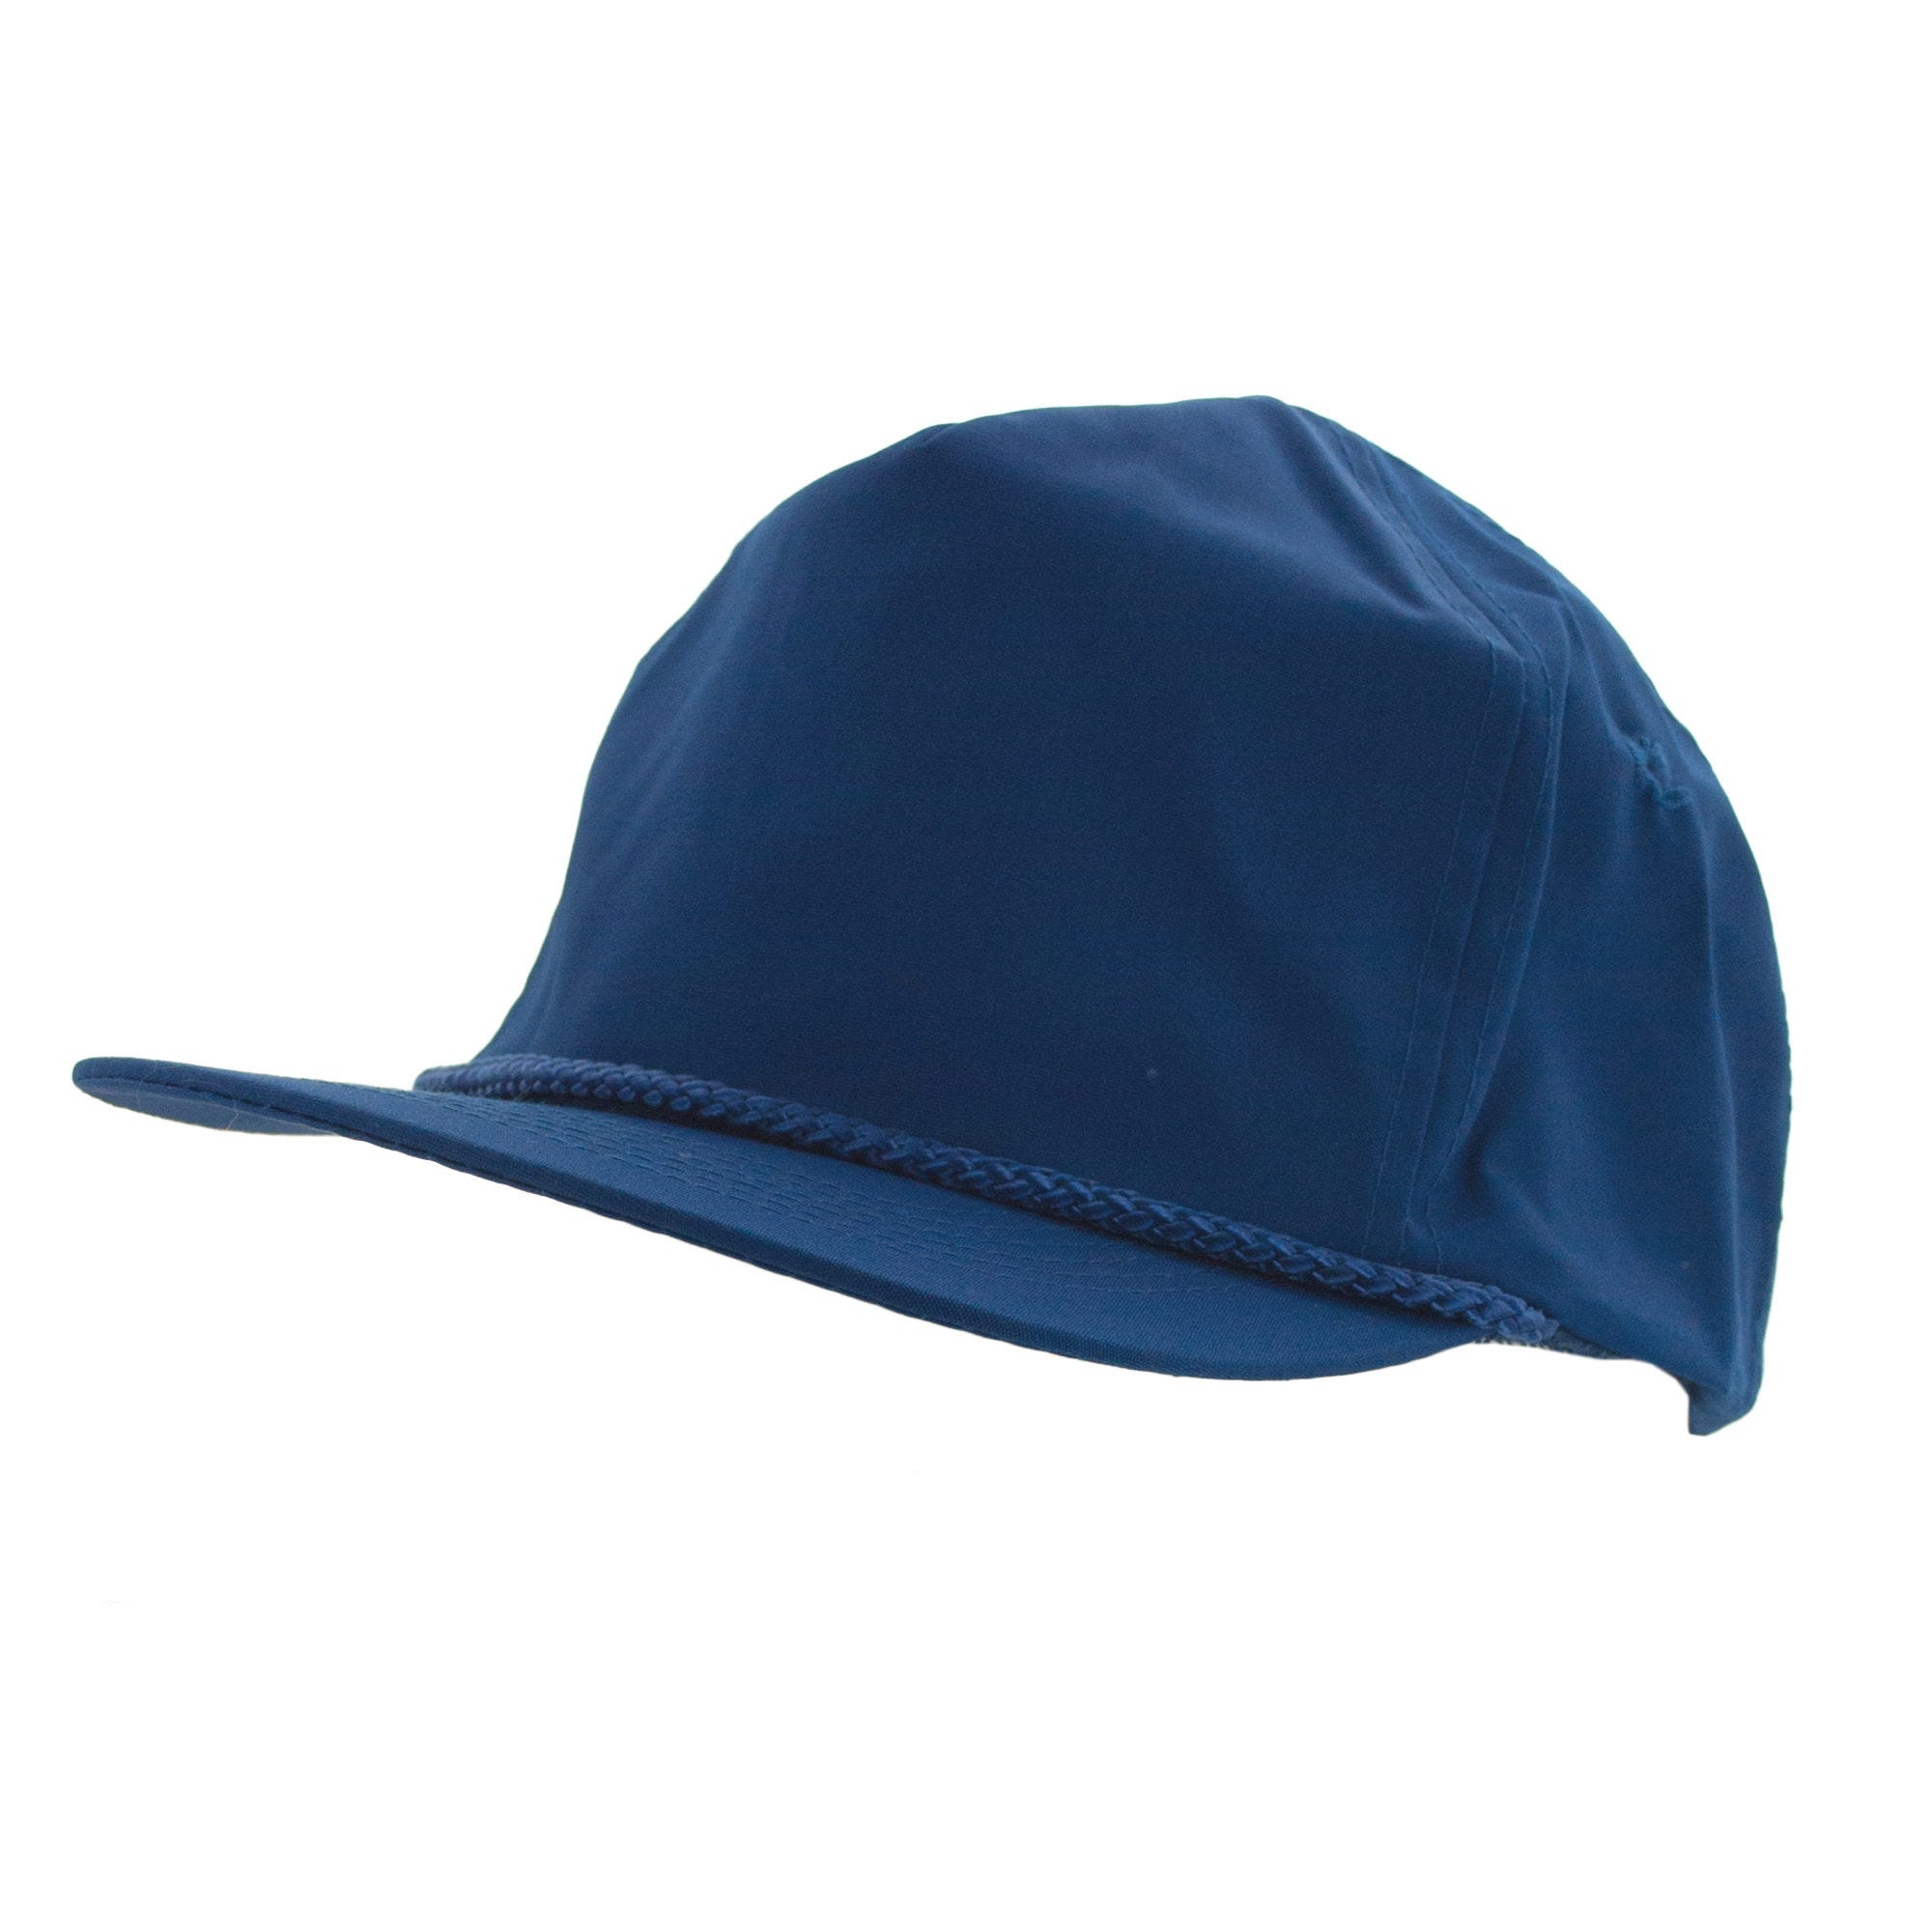 2b7e2f89 Wholesale Baseball Cap now available at Wholesale Central - Items 1 - 40